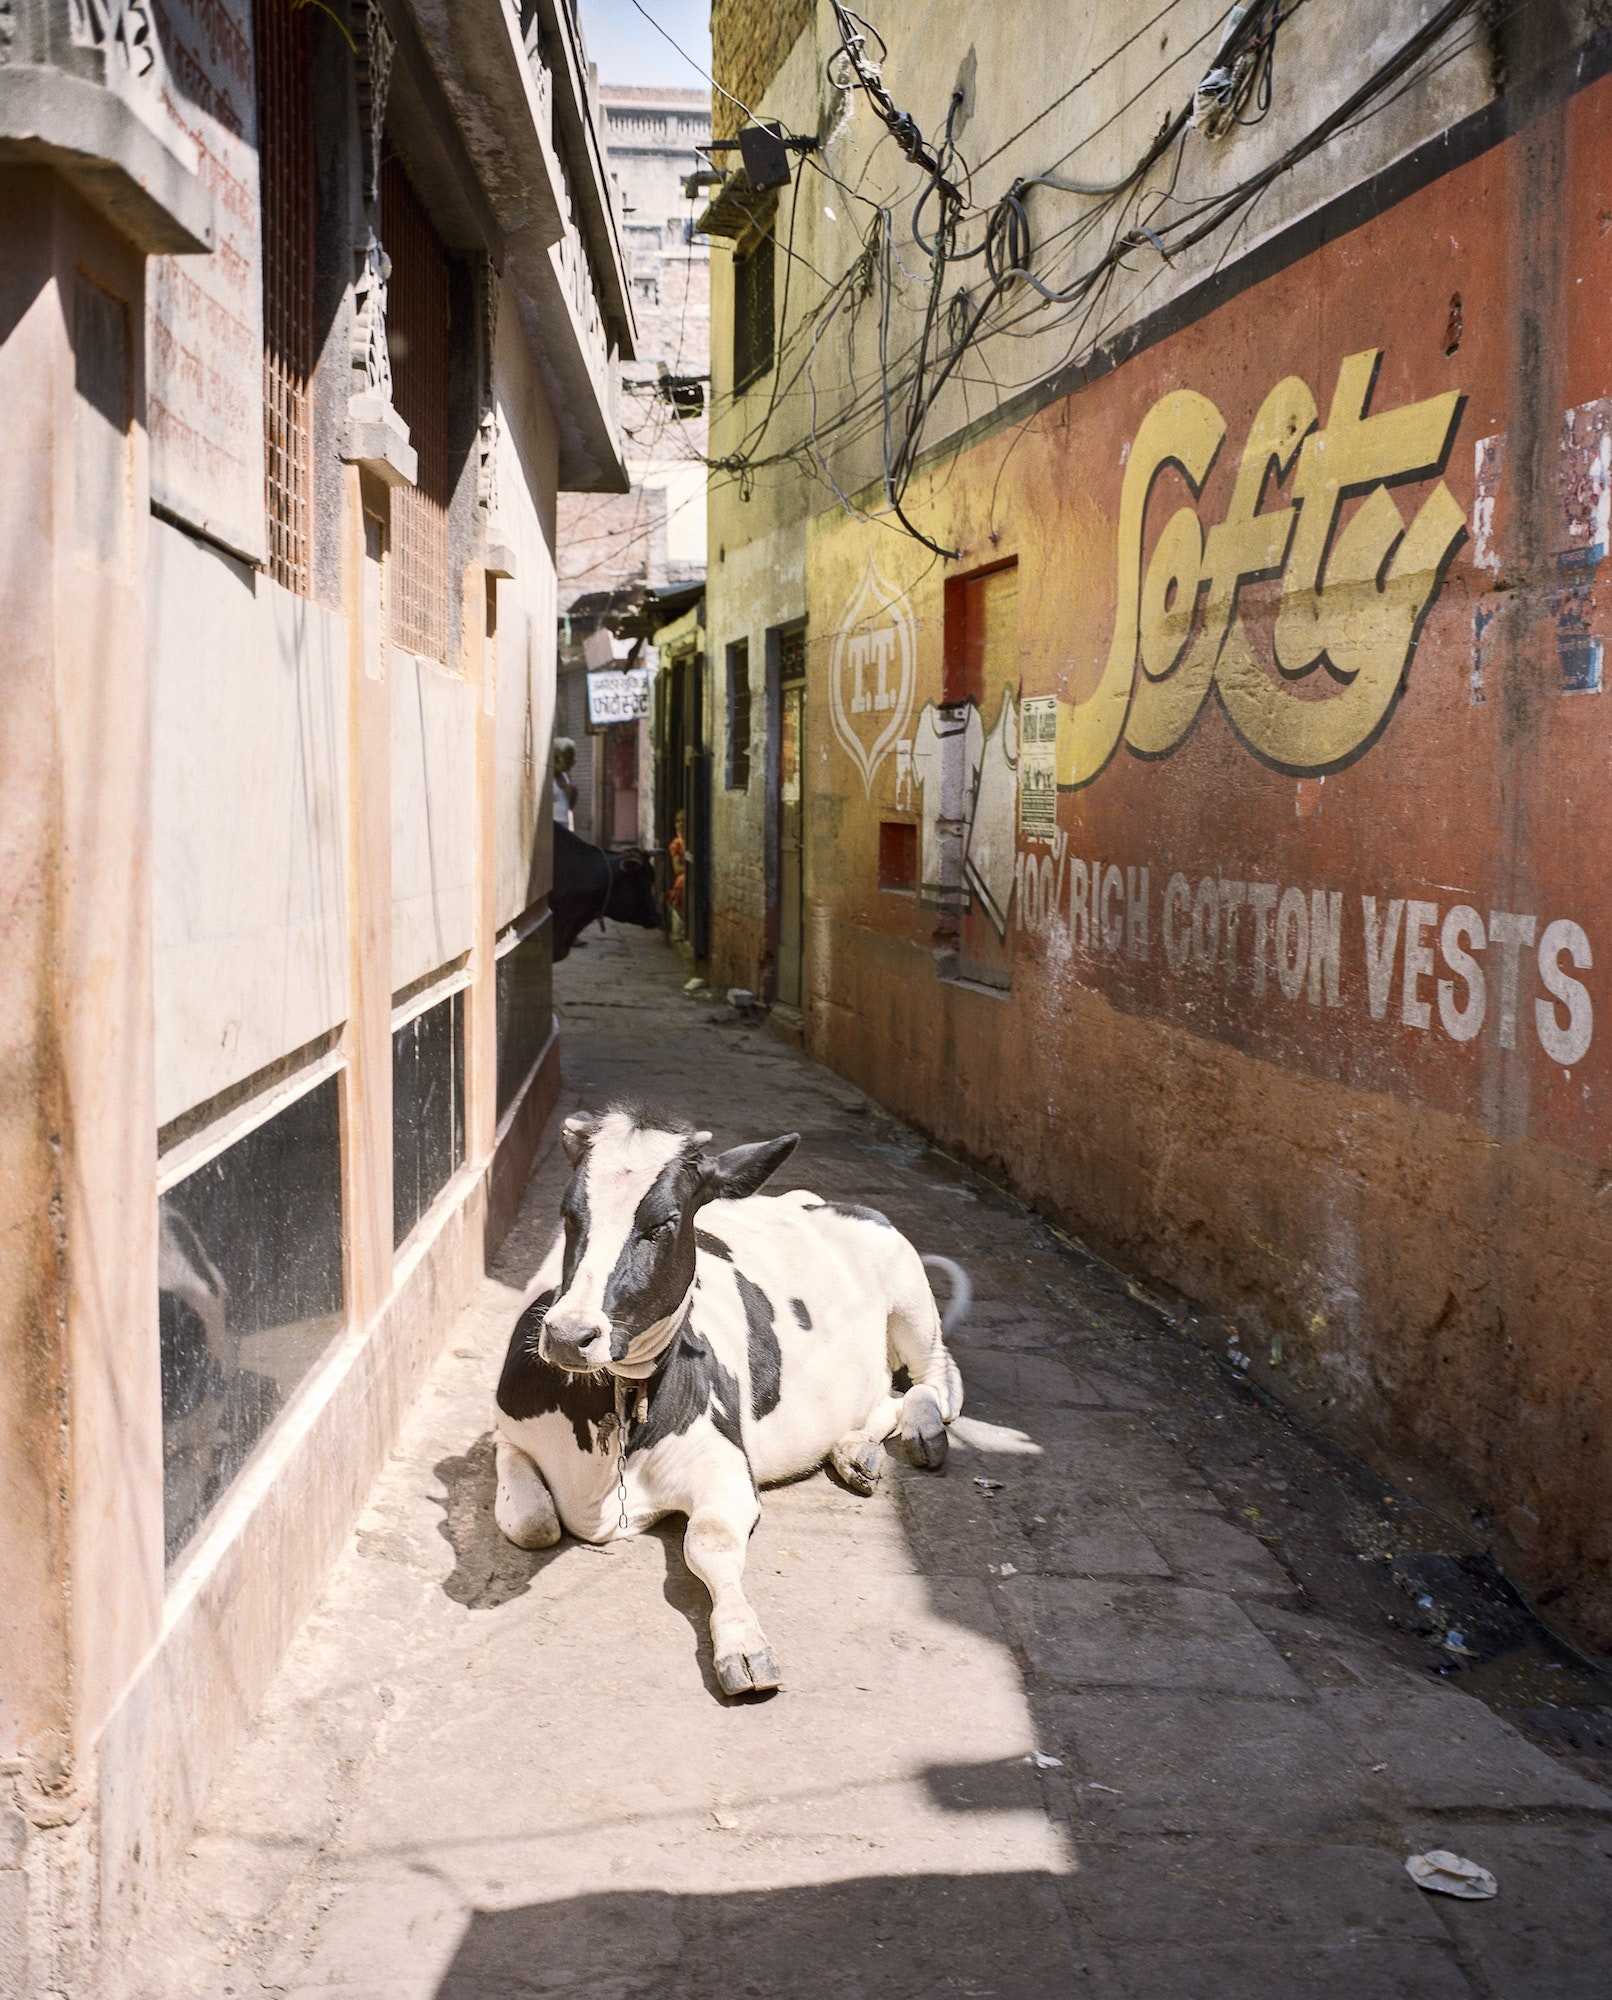 The pace of life in Varanasi slows as you wander deep into the alleys of the old city.